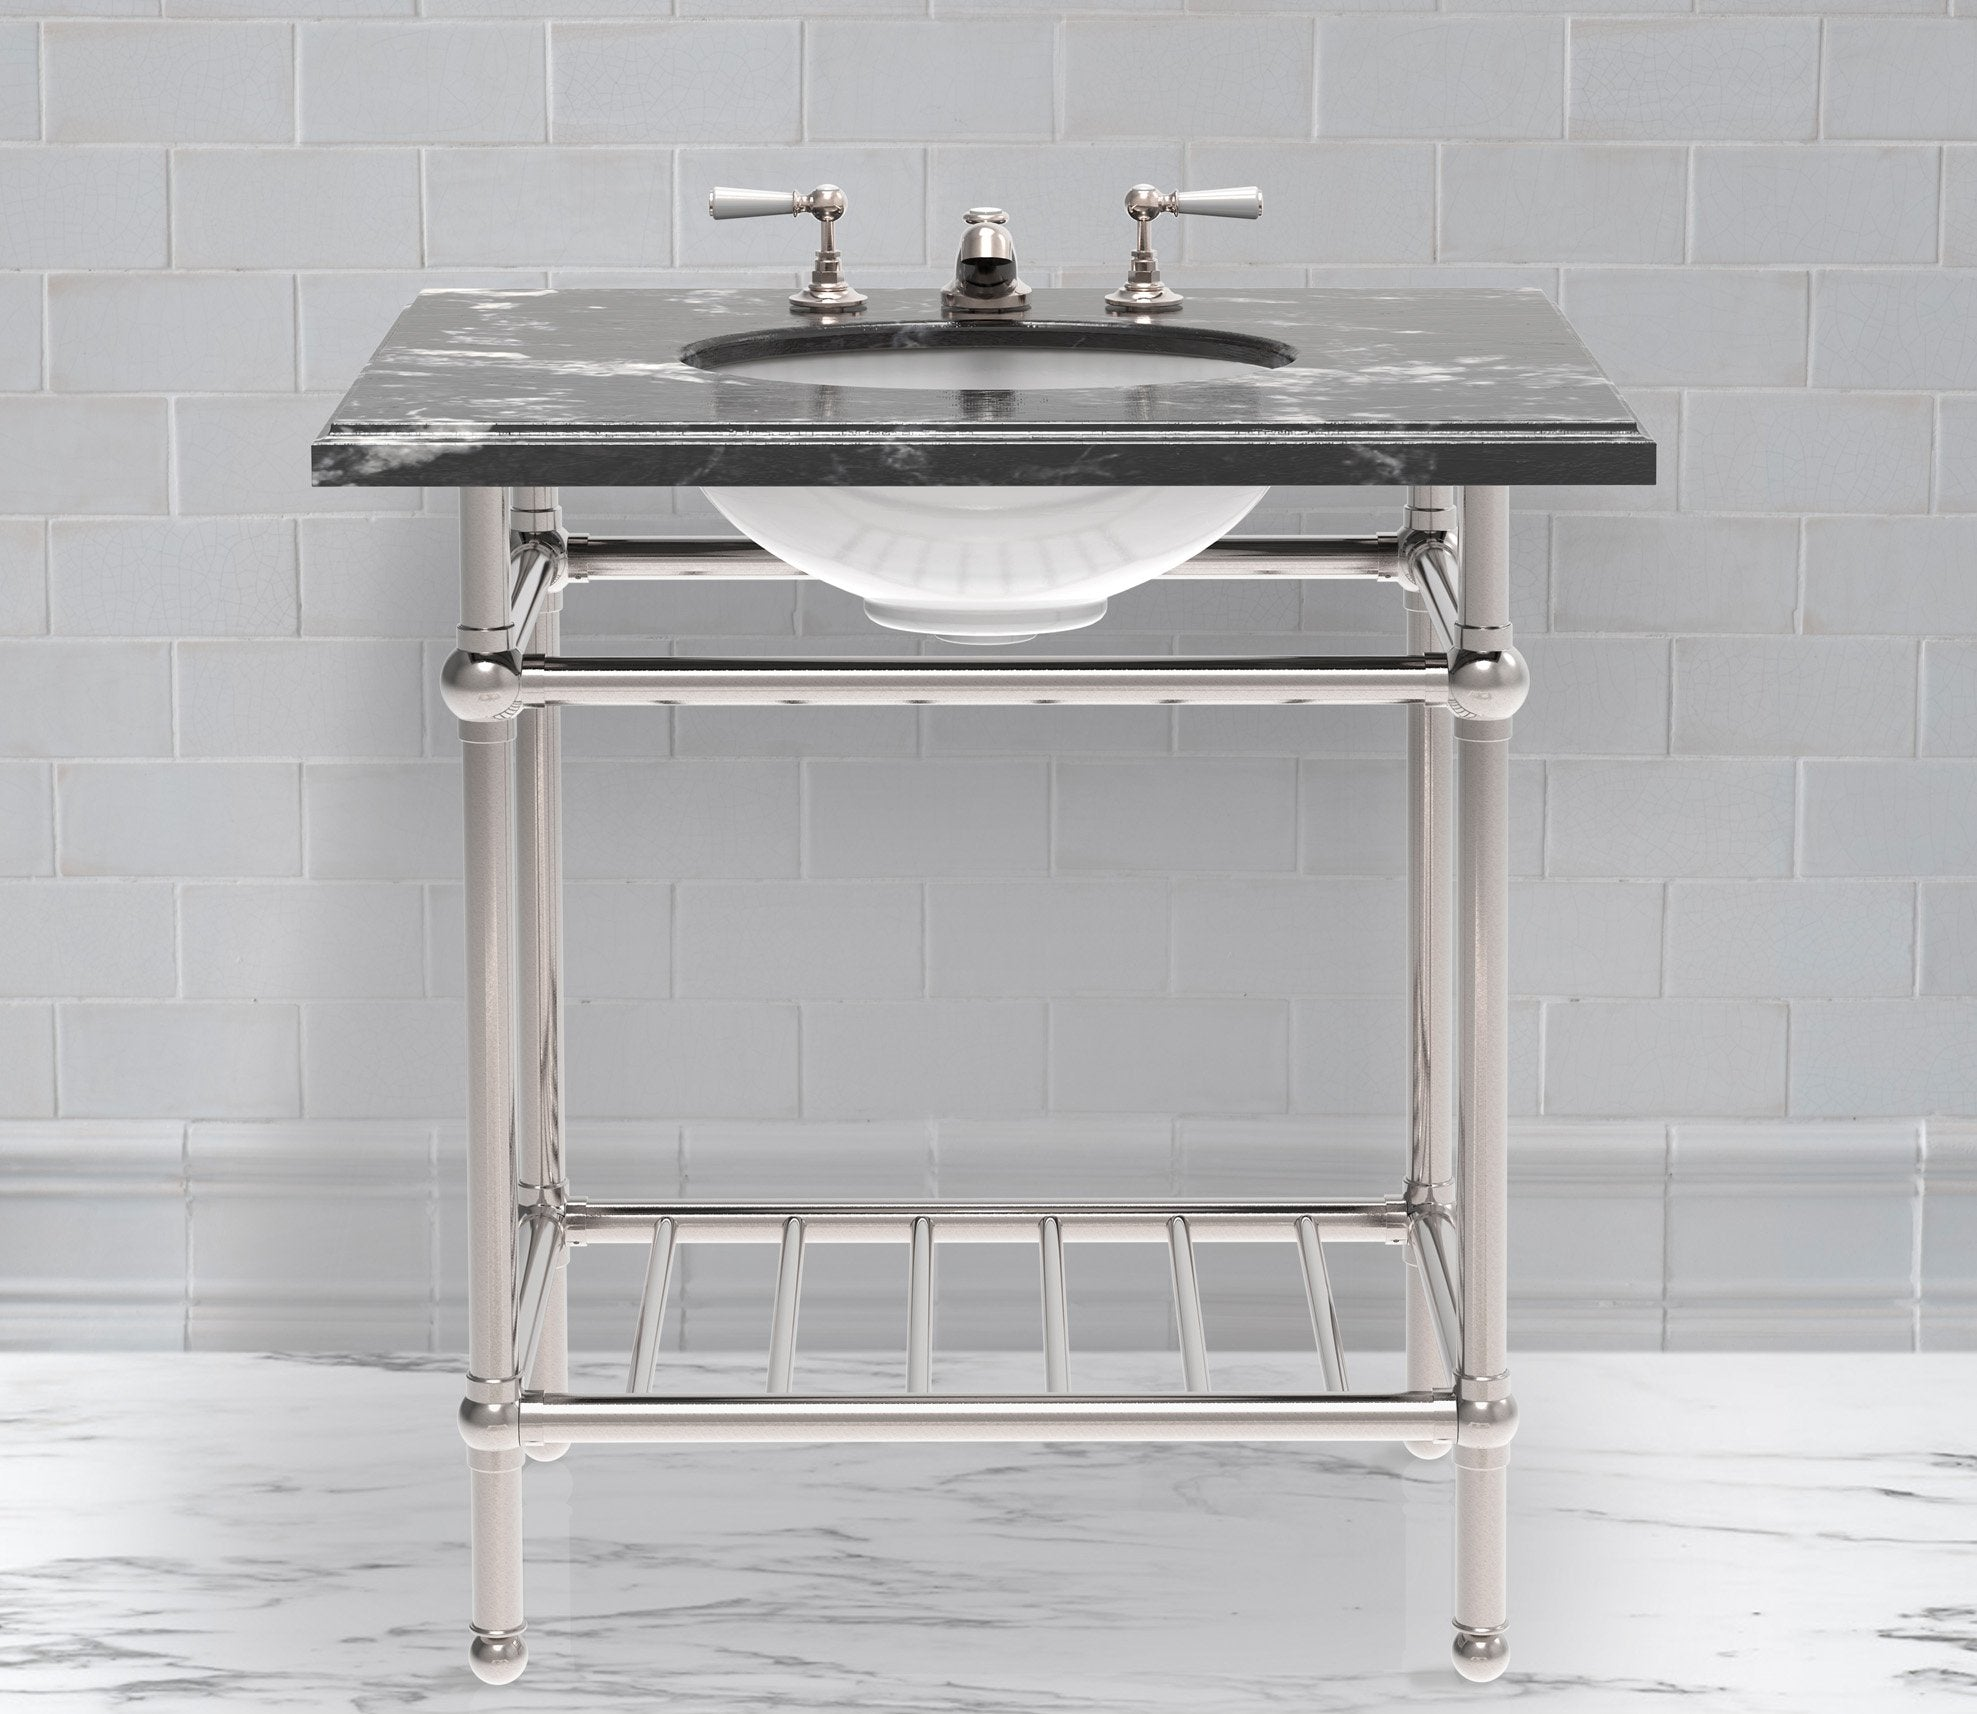 Gotham Washstand with Metal Shelf Single Product Image 1